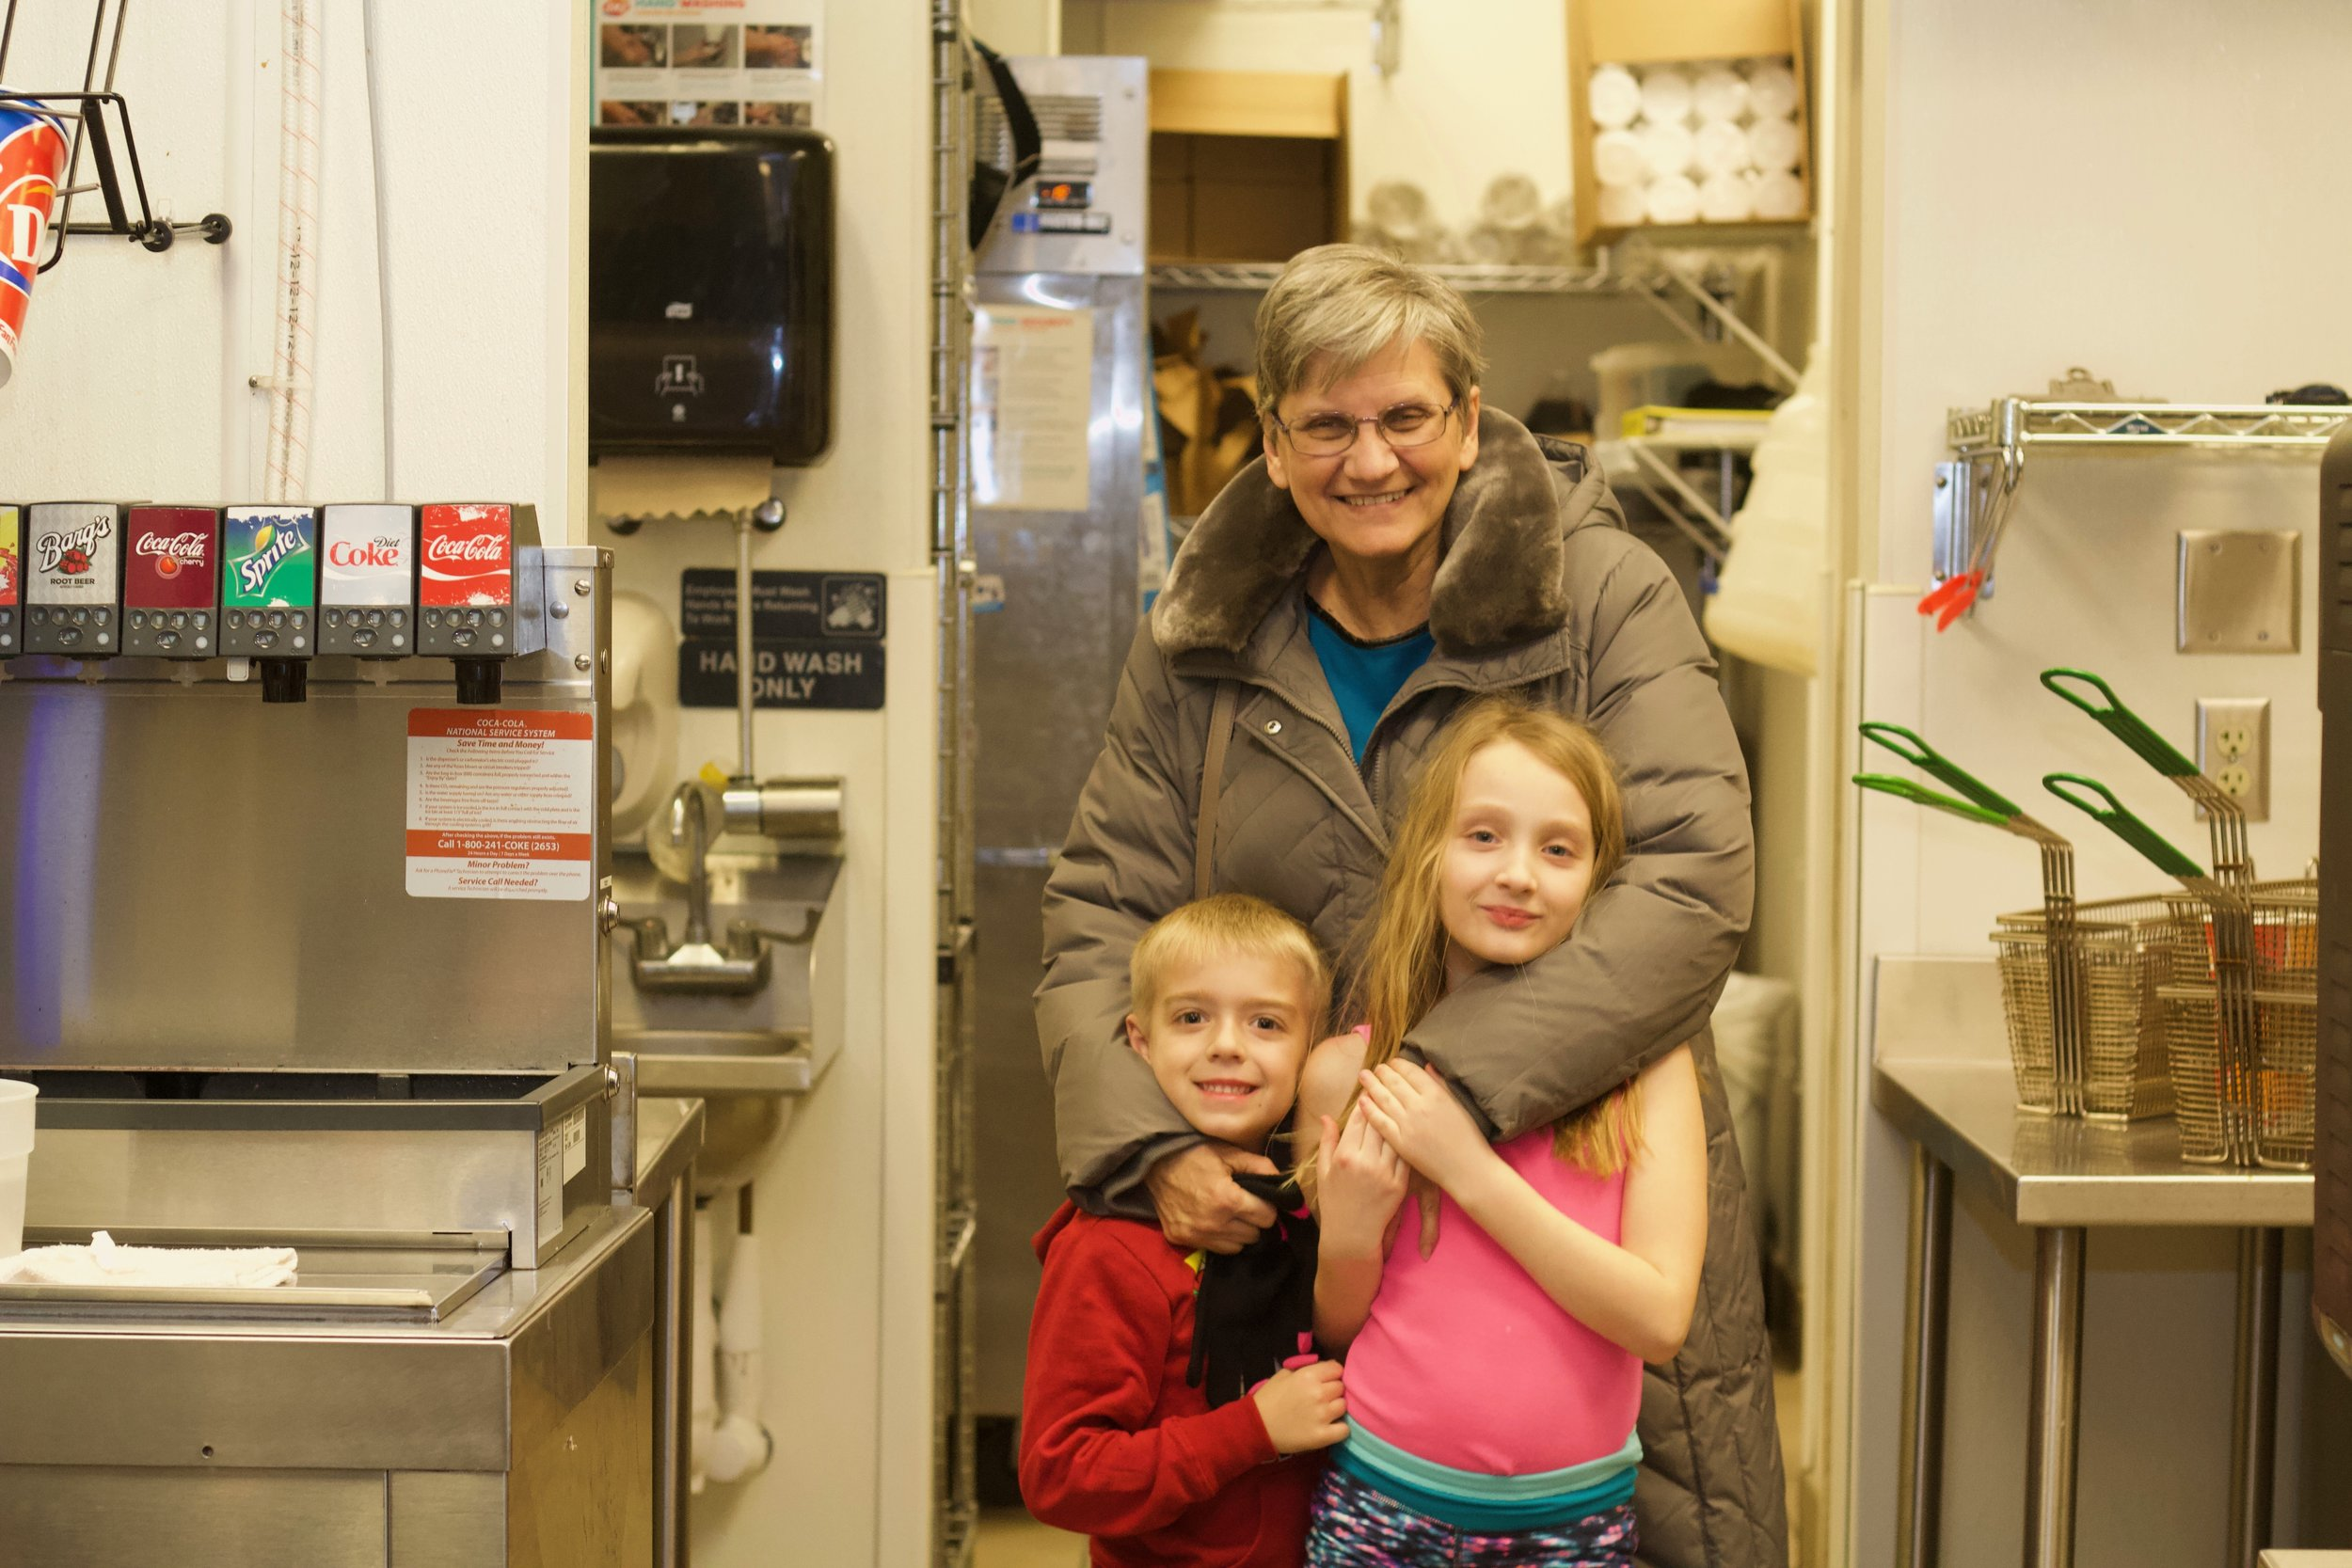 Arlene with her grandkids, Jami and Zach at the new Grill and Chill Dairy Queen on 1740 Roosevelt Ave